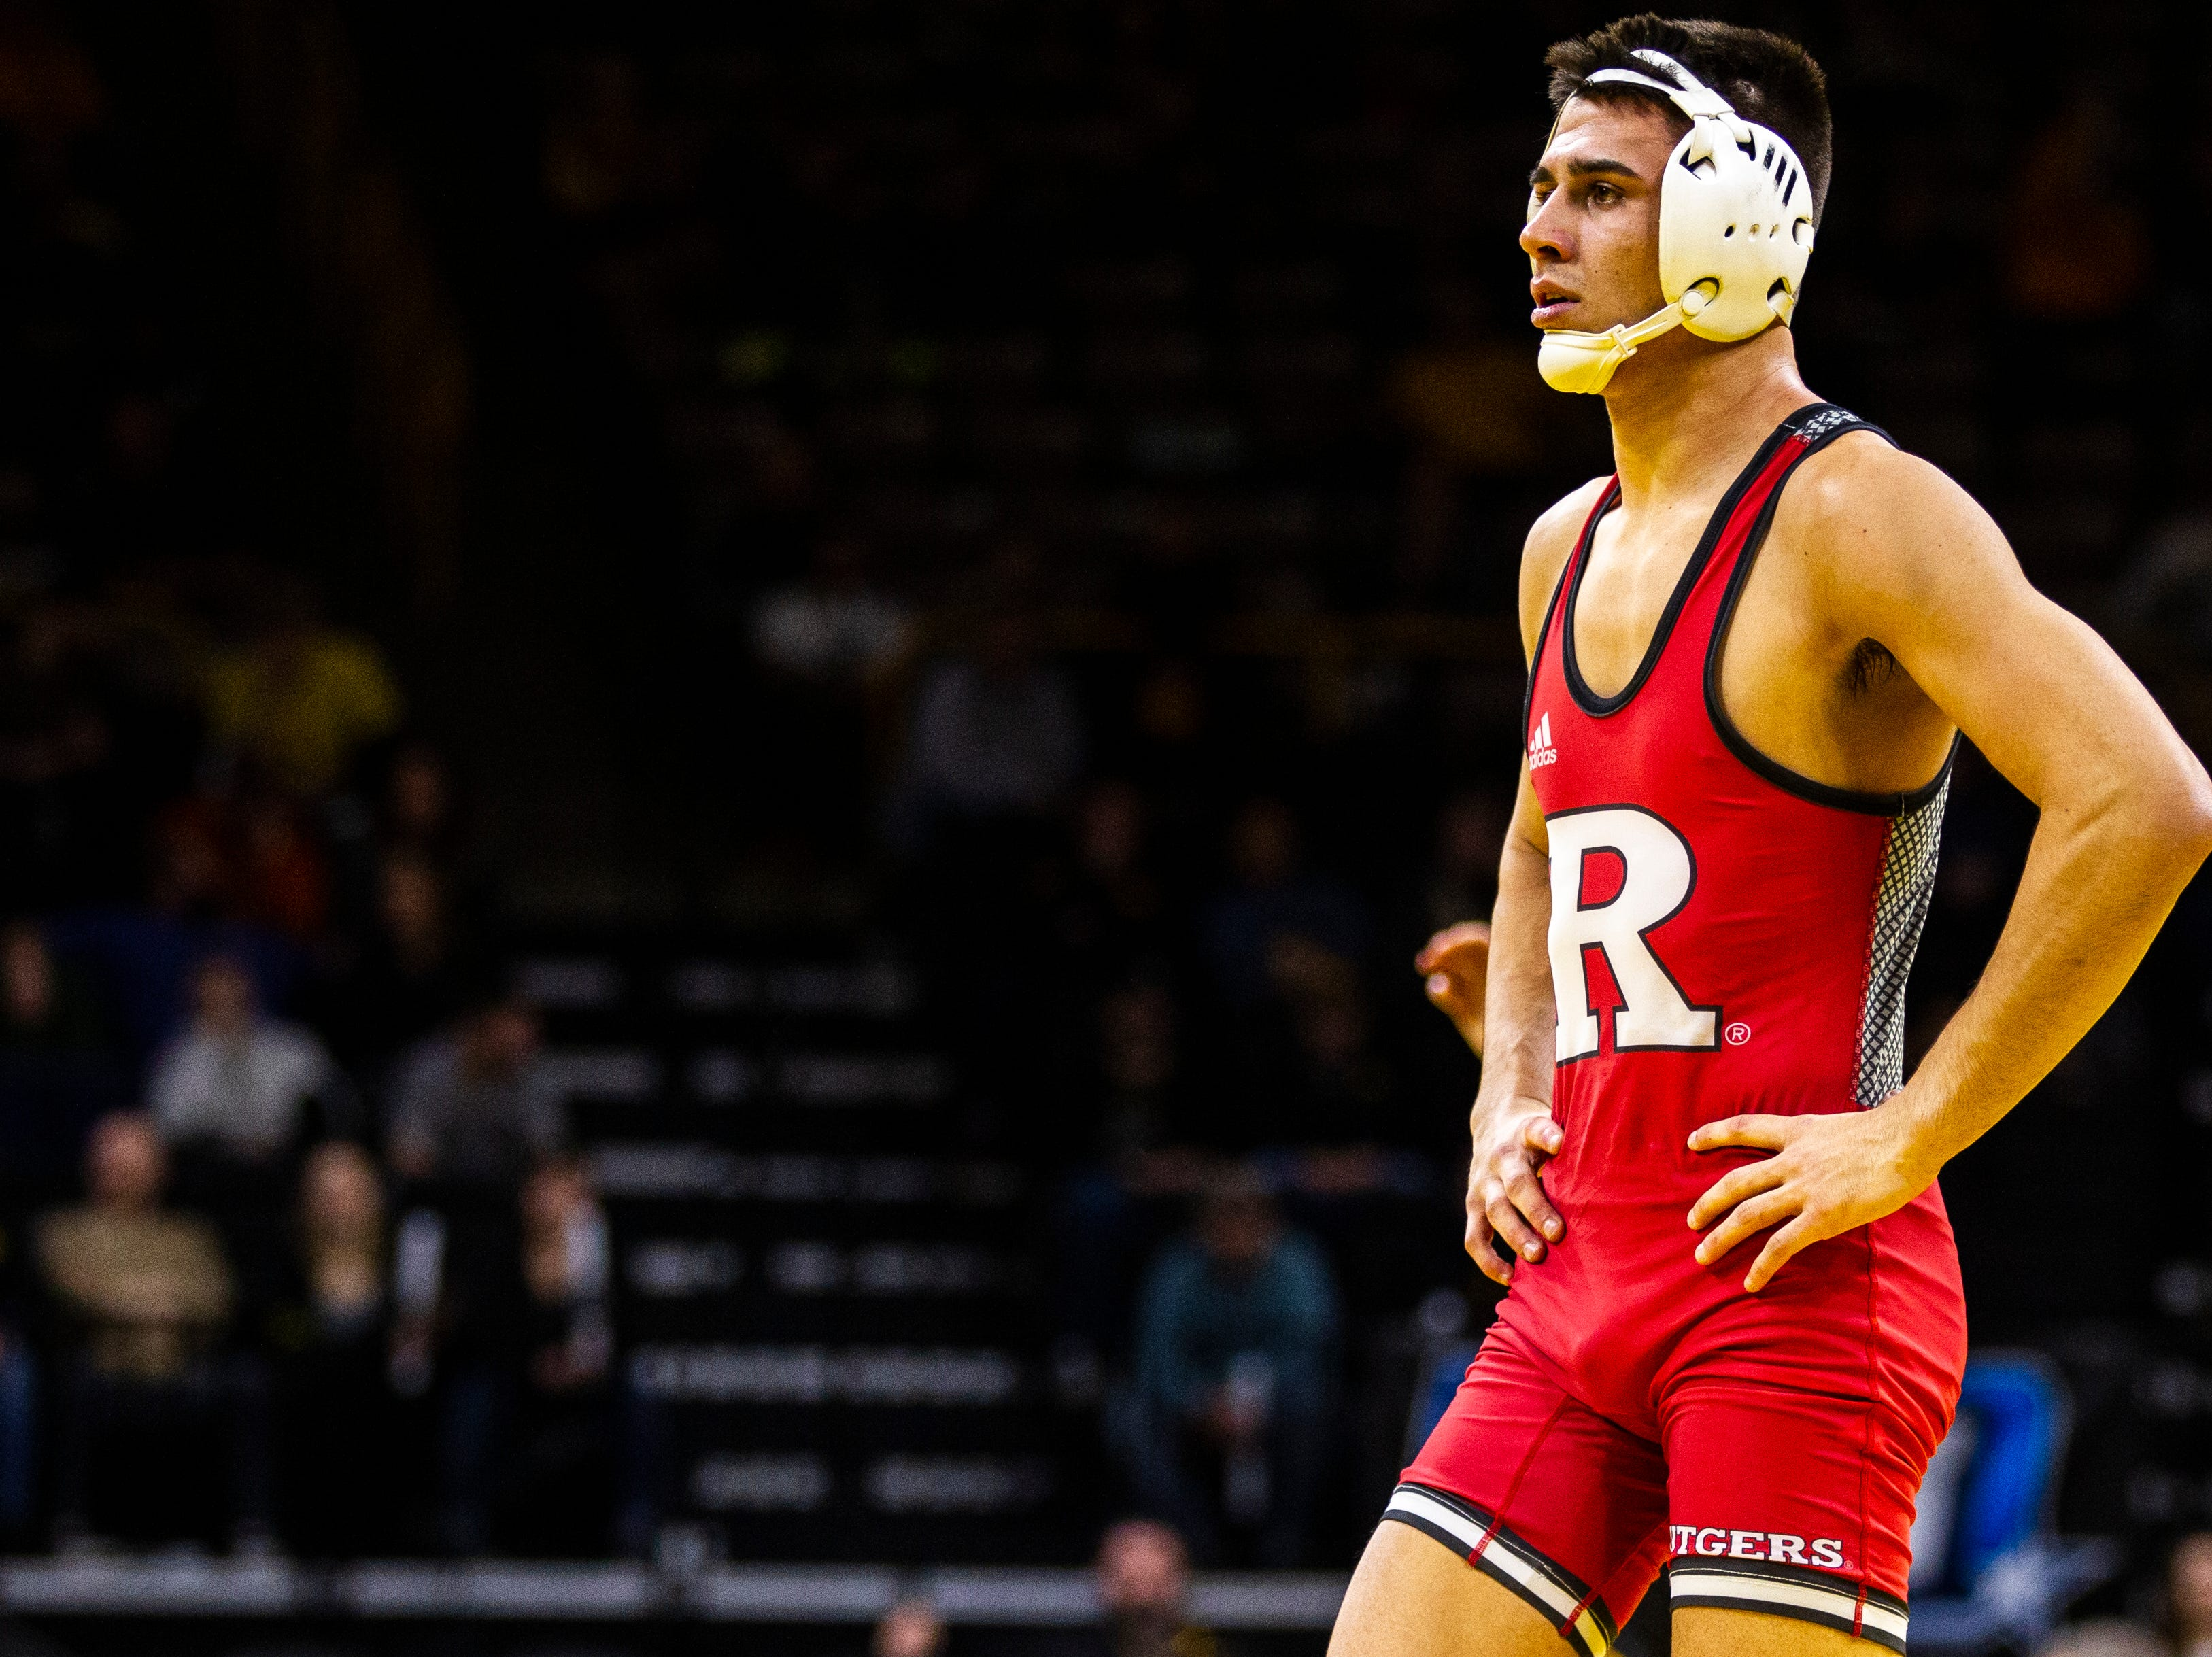 Rutgers' John Van Brill is seen at 157 during a NCAA Big Ten Conference wrestling dual on Friday, Jan. 18, 2019, at Carver-Hawkeye Arena in Iowa City, Iowa.